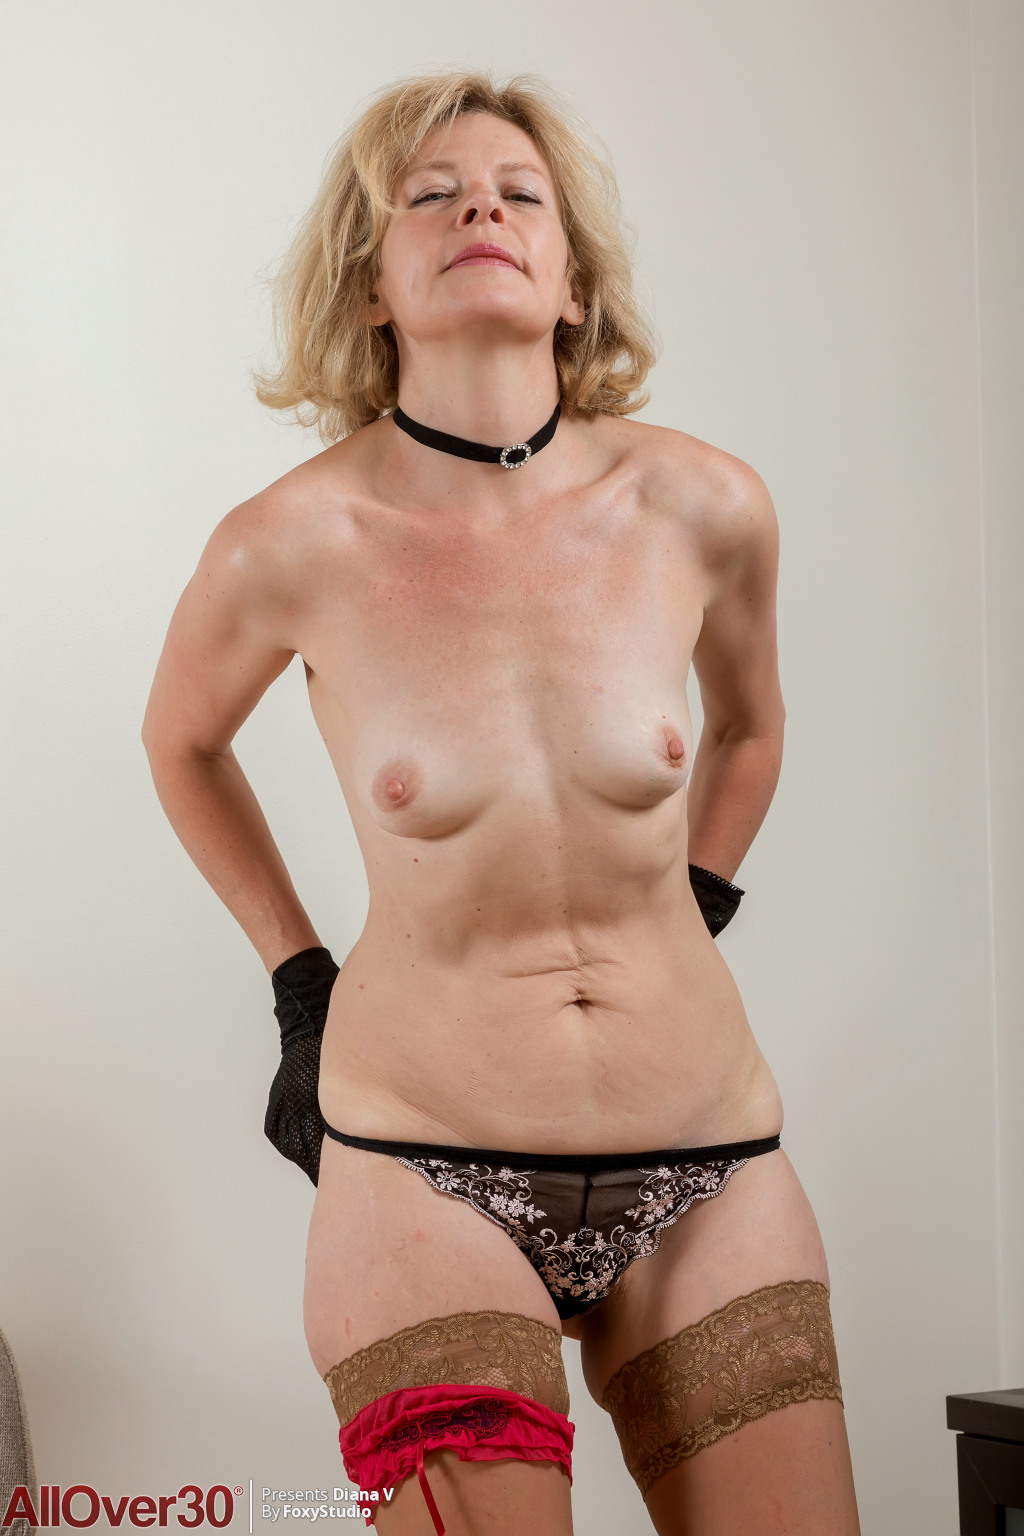 Allover30Freecom- Hot Older Women - 51 Year Old Diana V -9903